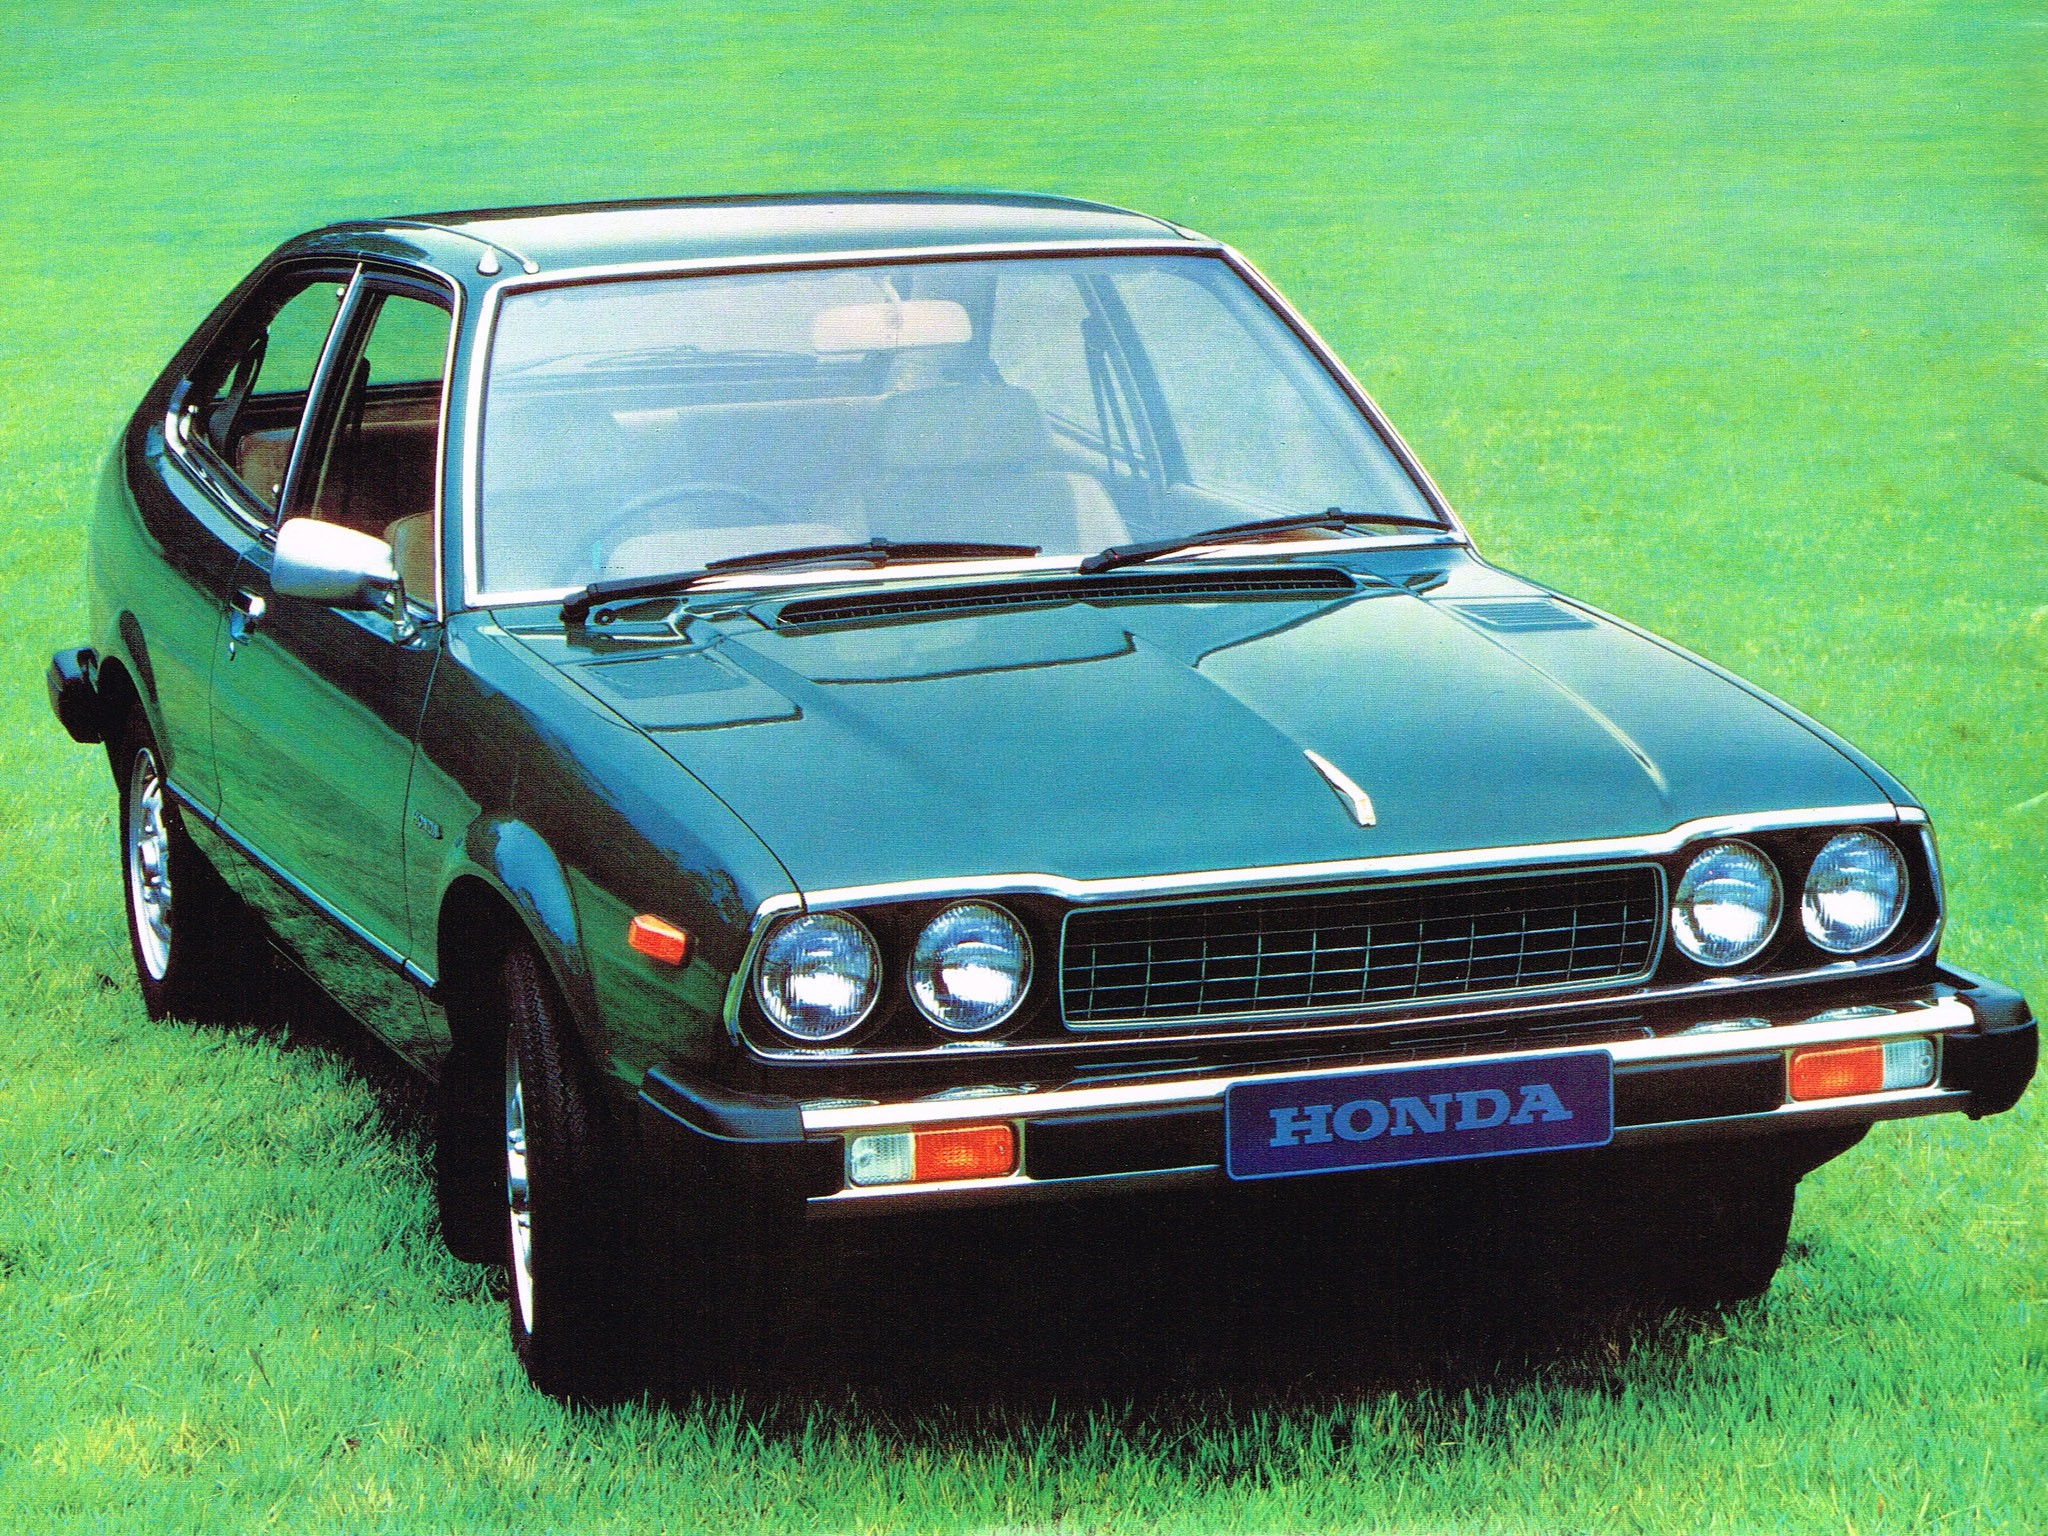 HONDA Accord 3 Doors specs & photos - 1976, 1977, 1978, 1979, 1980, 1981 - autoevolution